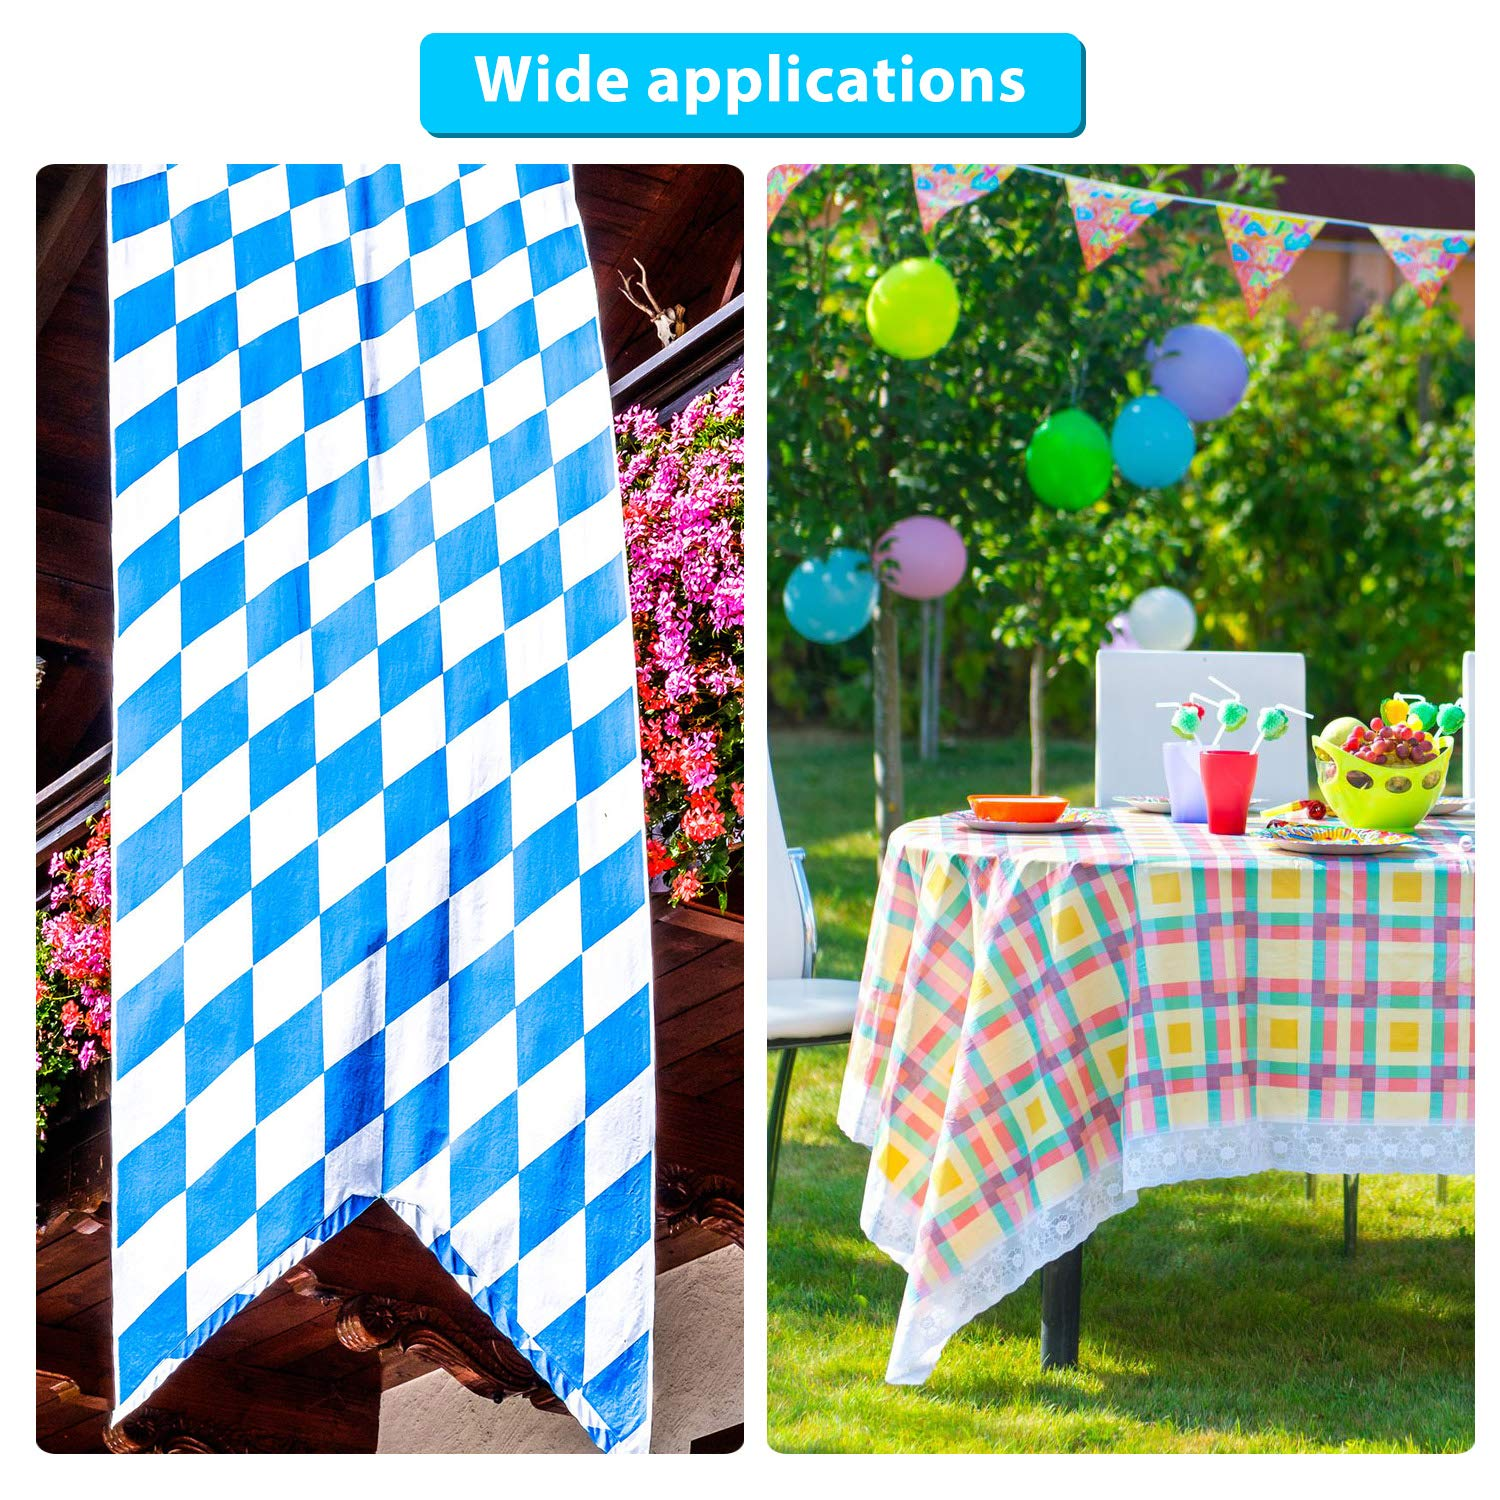 Tablecloth 20 Pieces Curtain Weights Bottom Drapery Lead Weights Covered Drapery Weights Fabric Curtain Weights for Curtains Flags